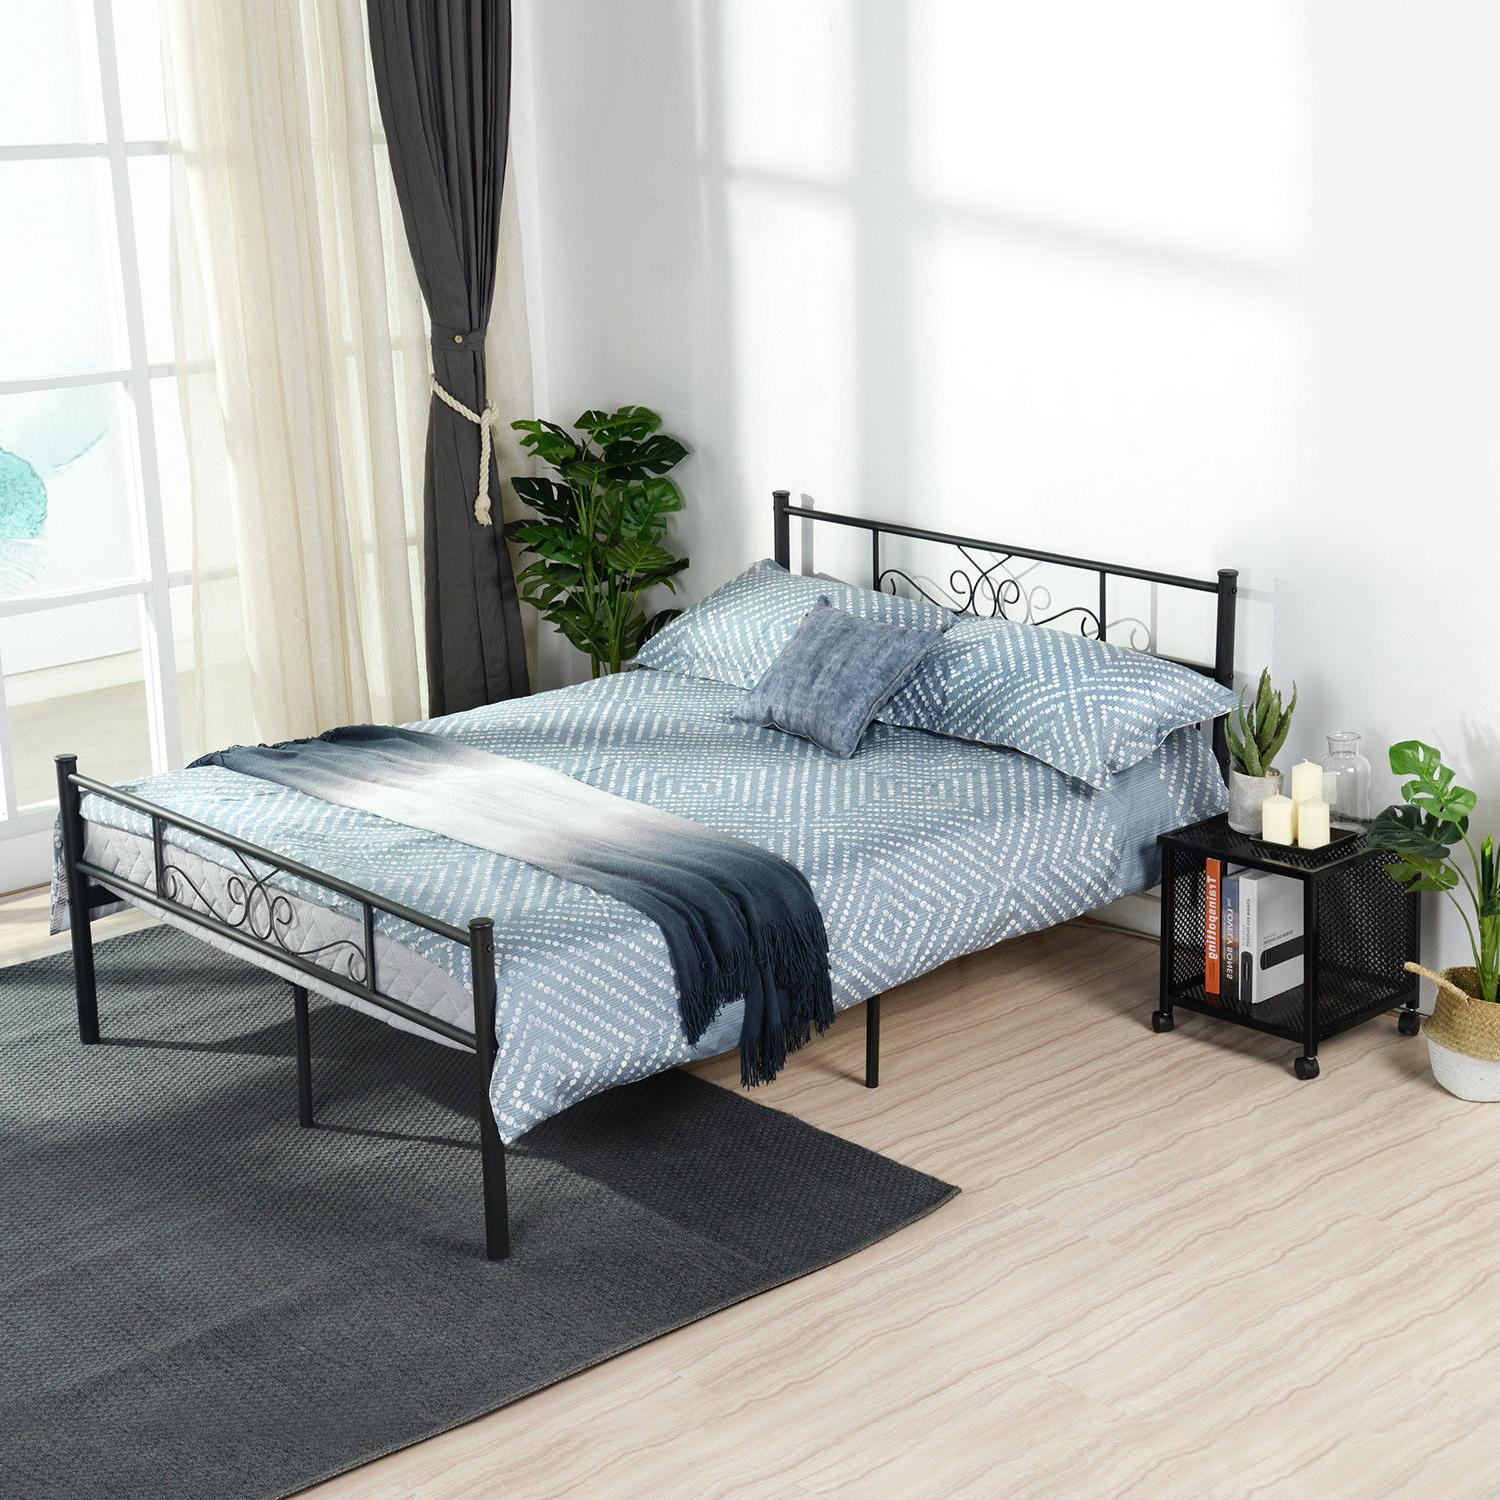 Queen Metal Frame Bedroom Foundation with Headboard